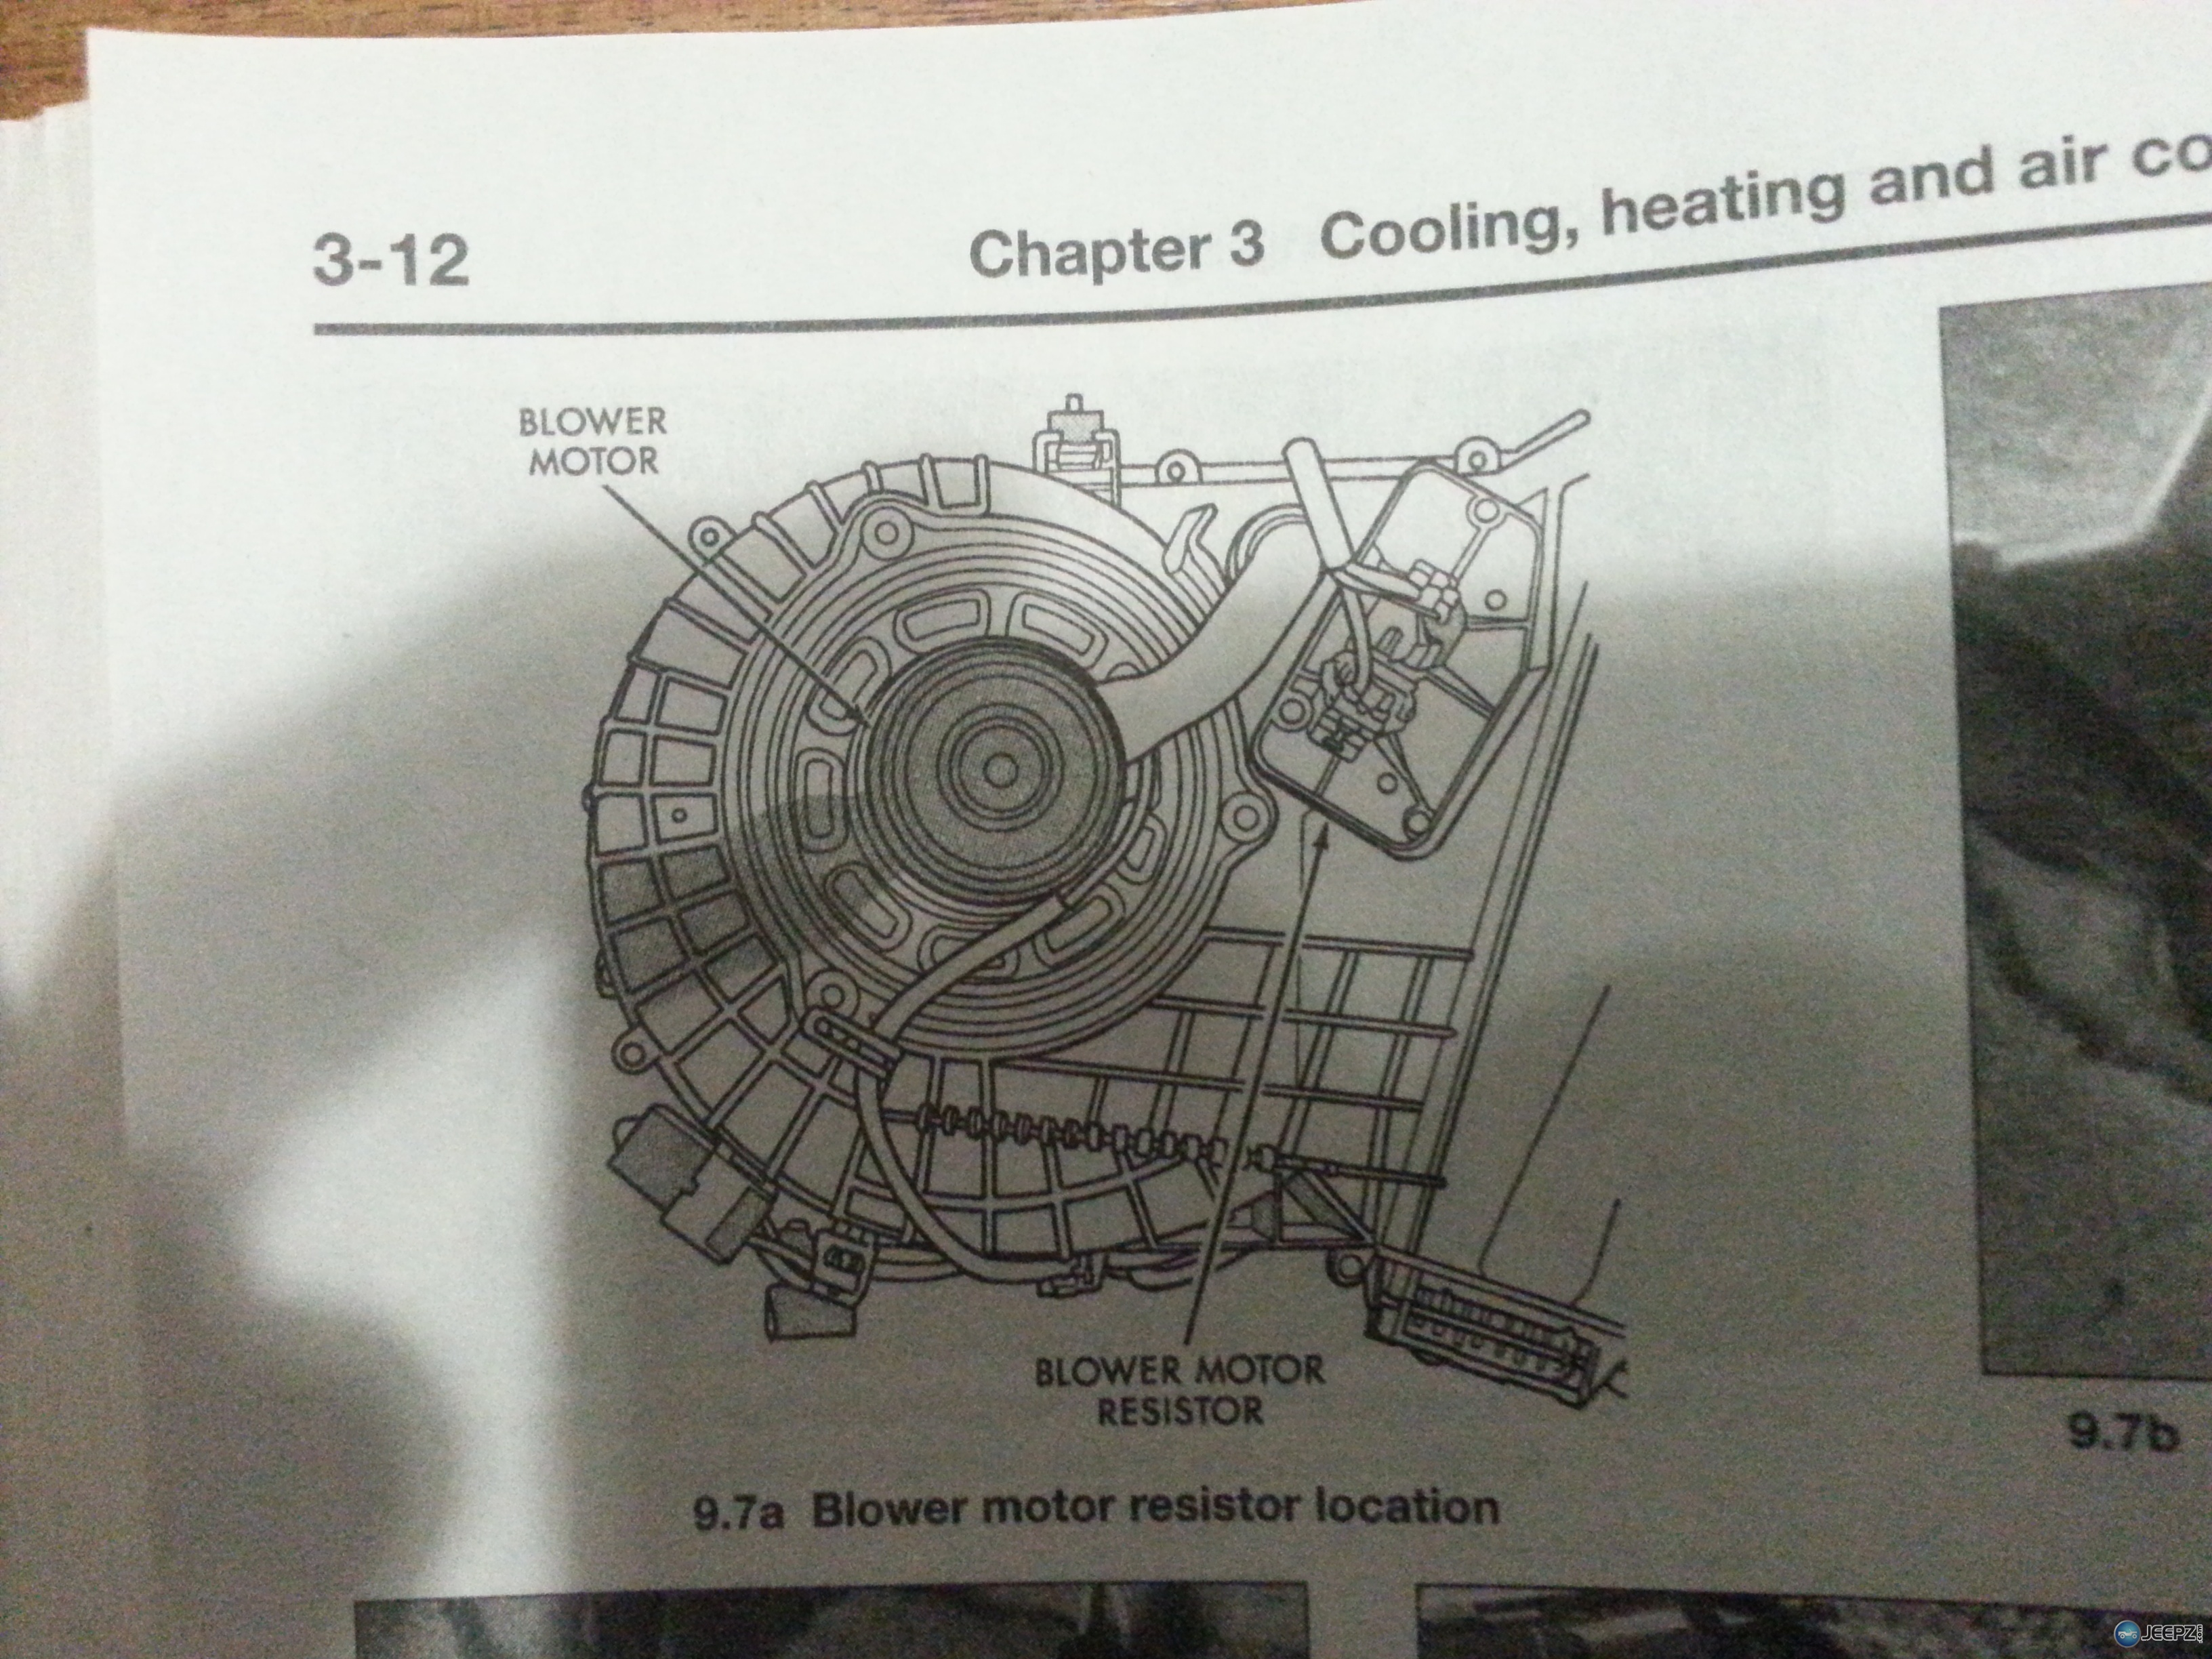 1999 jeep wrangler blower motor wiring diagram 1999 1999 jeep grand cherokee blower motor resistor wiring diagram on 1999 jeep wrangler blower motor wiring